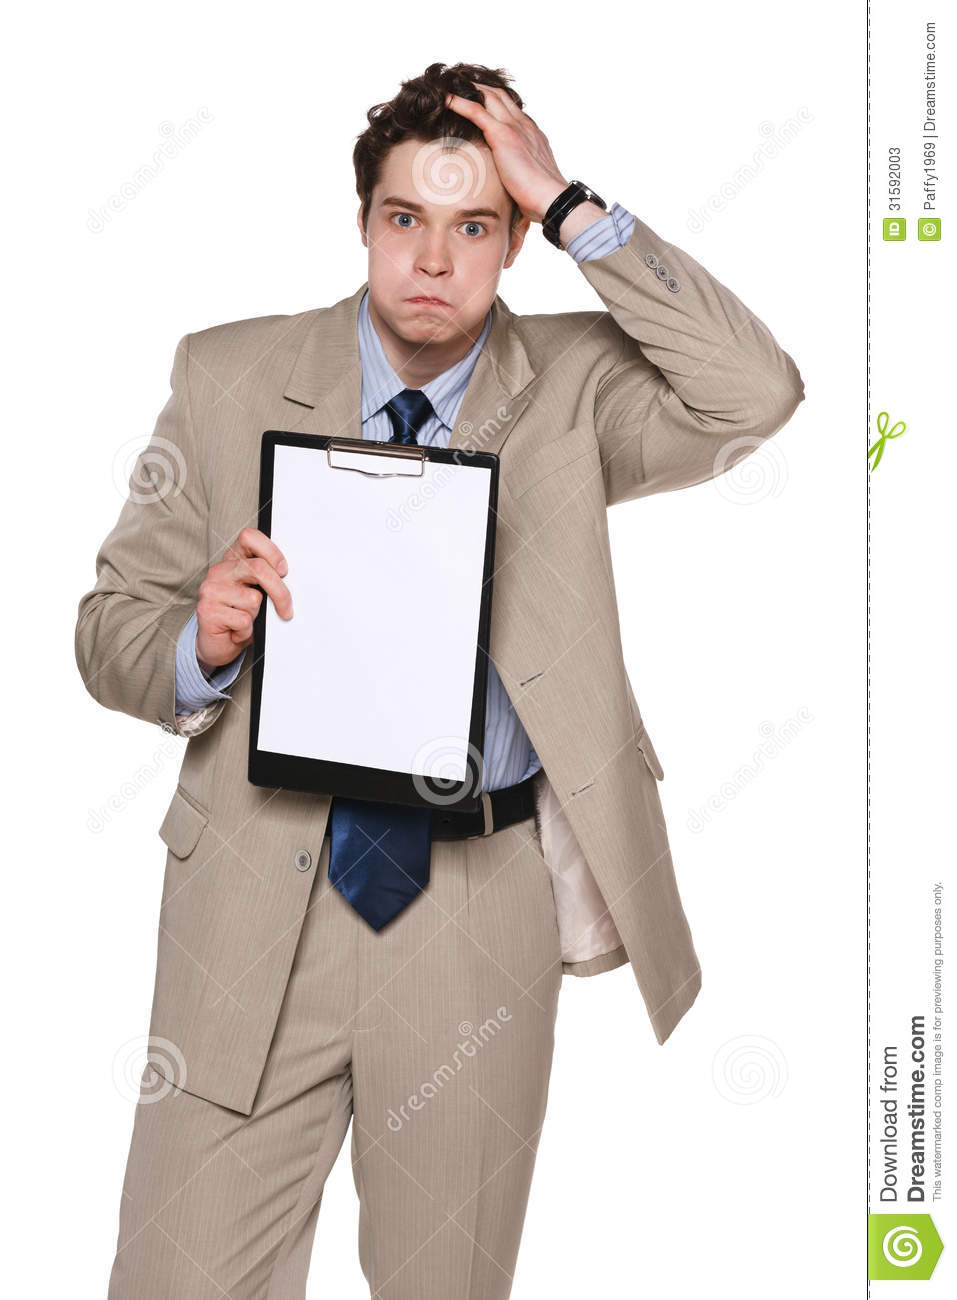 business man essays Different businessmen have different ways to build their own careers when  faced with the decision of what some of qualities of a successful businessman  are,.